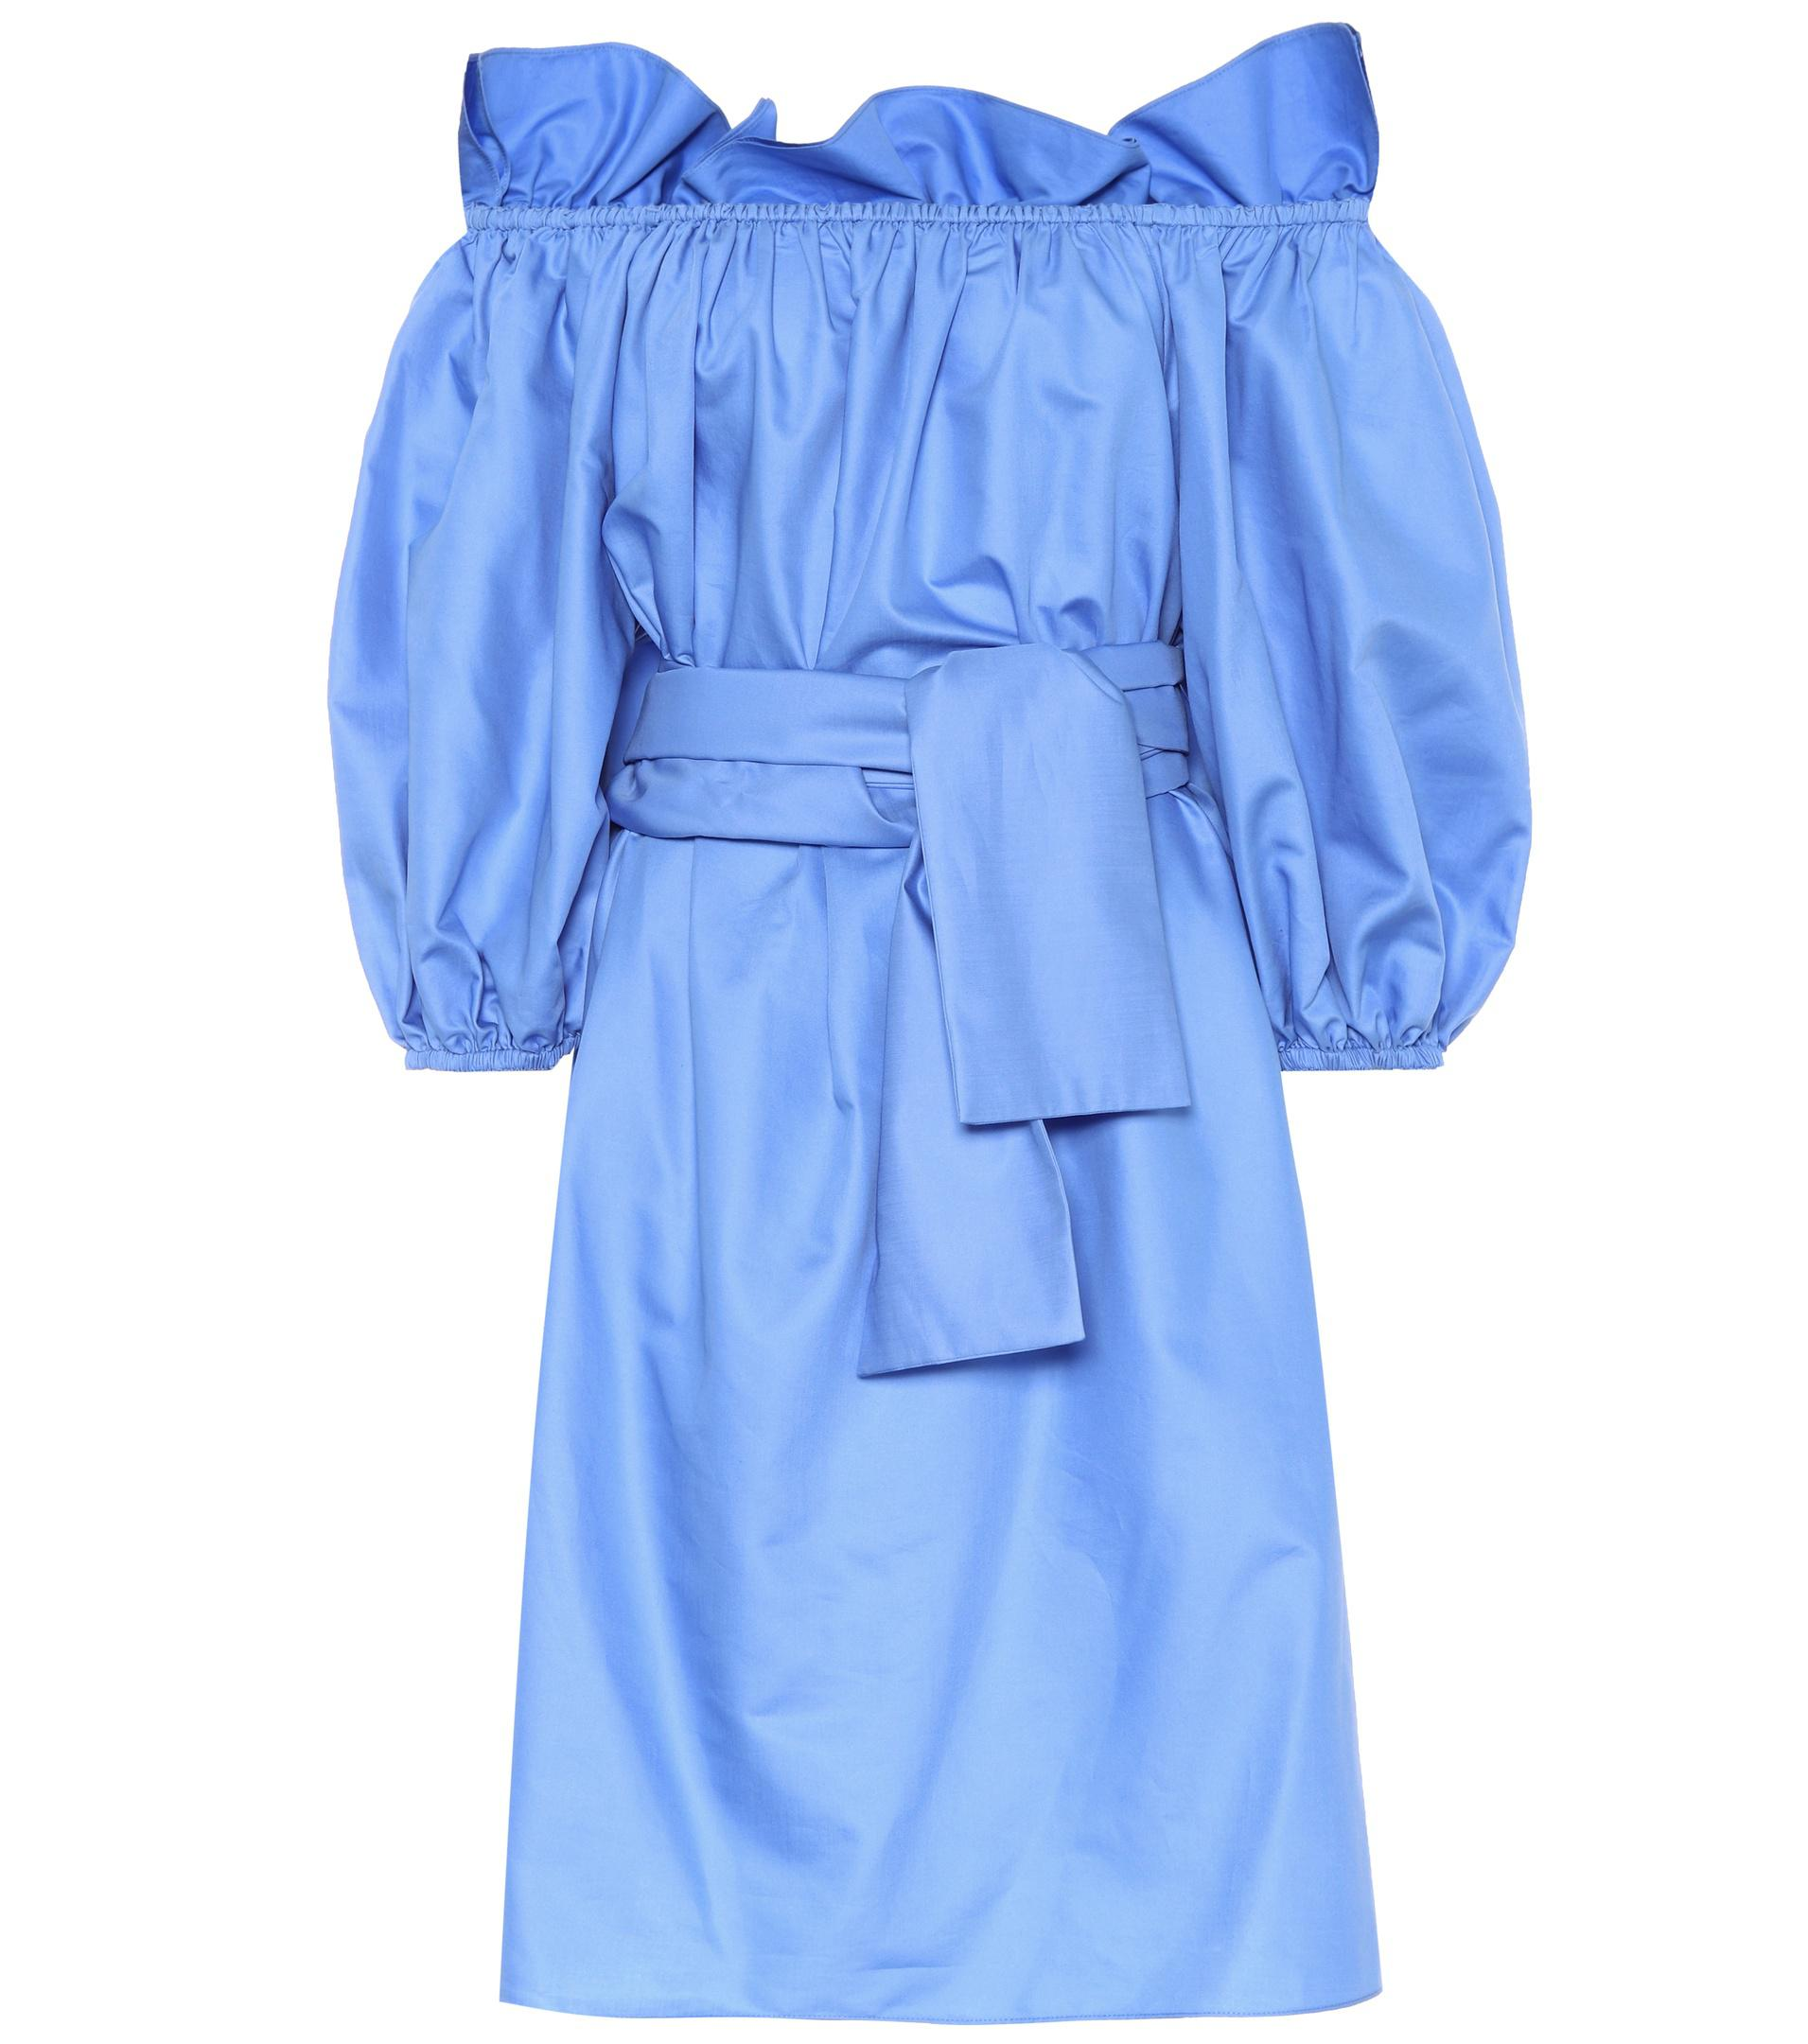 Really Cheap Sale Footaction Reyna cotton poplin dress Stella McCartney Sale Shop For HwW3e8lS